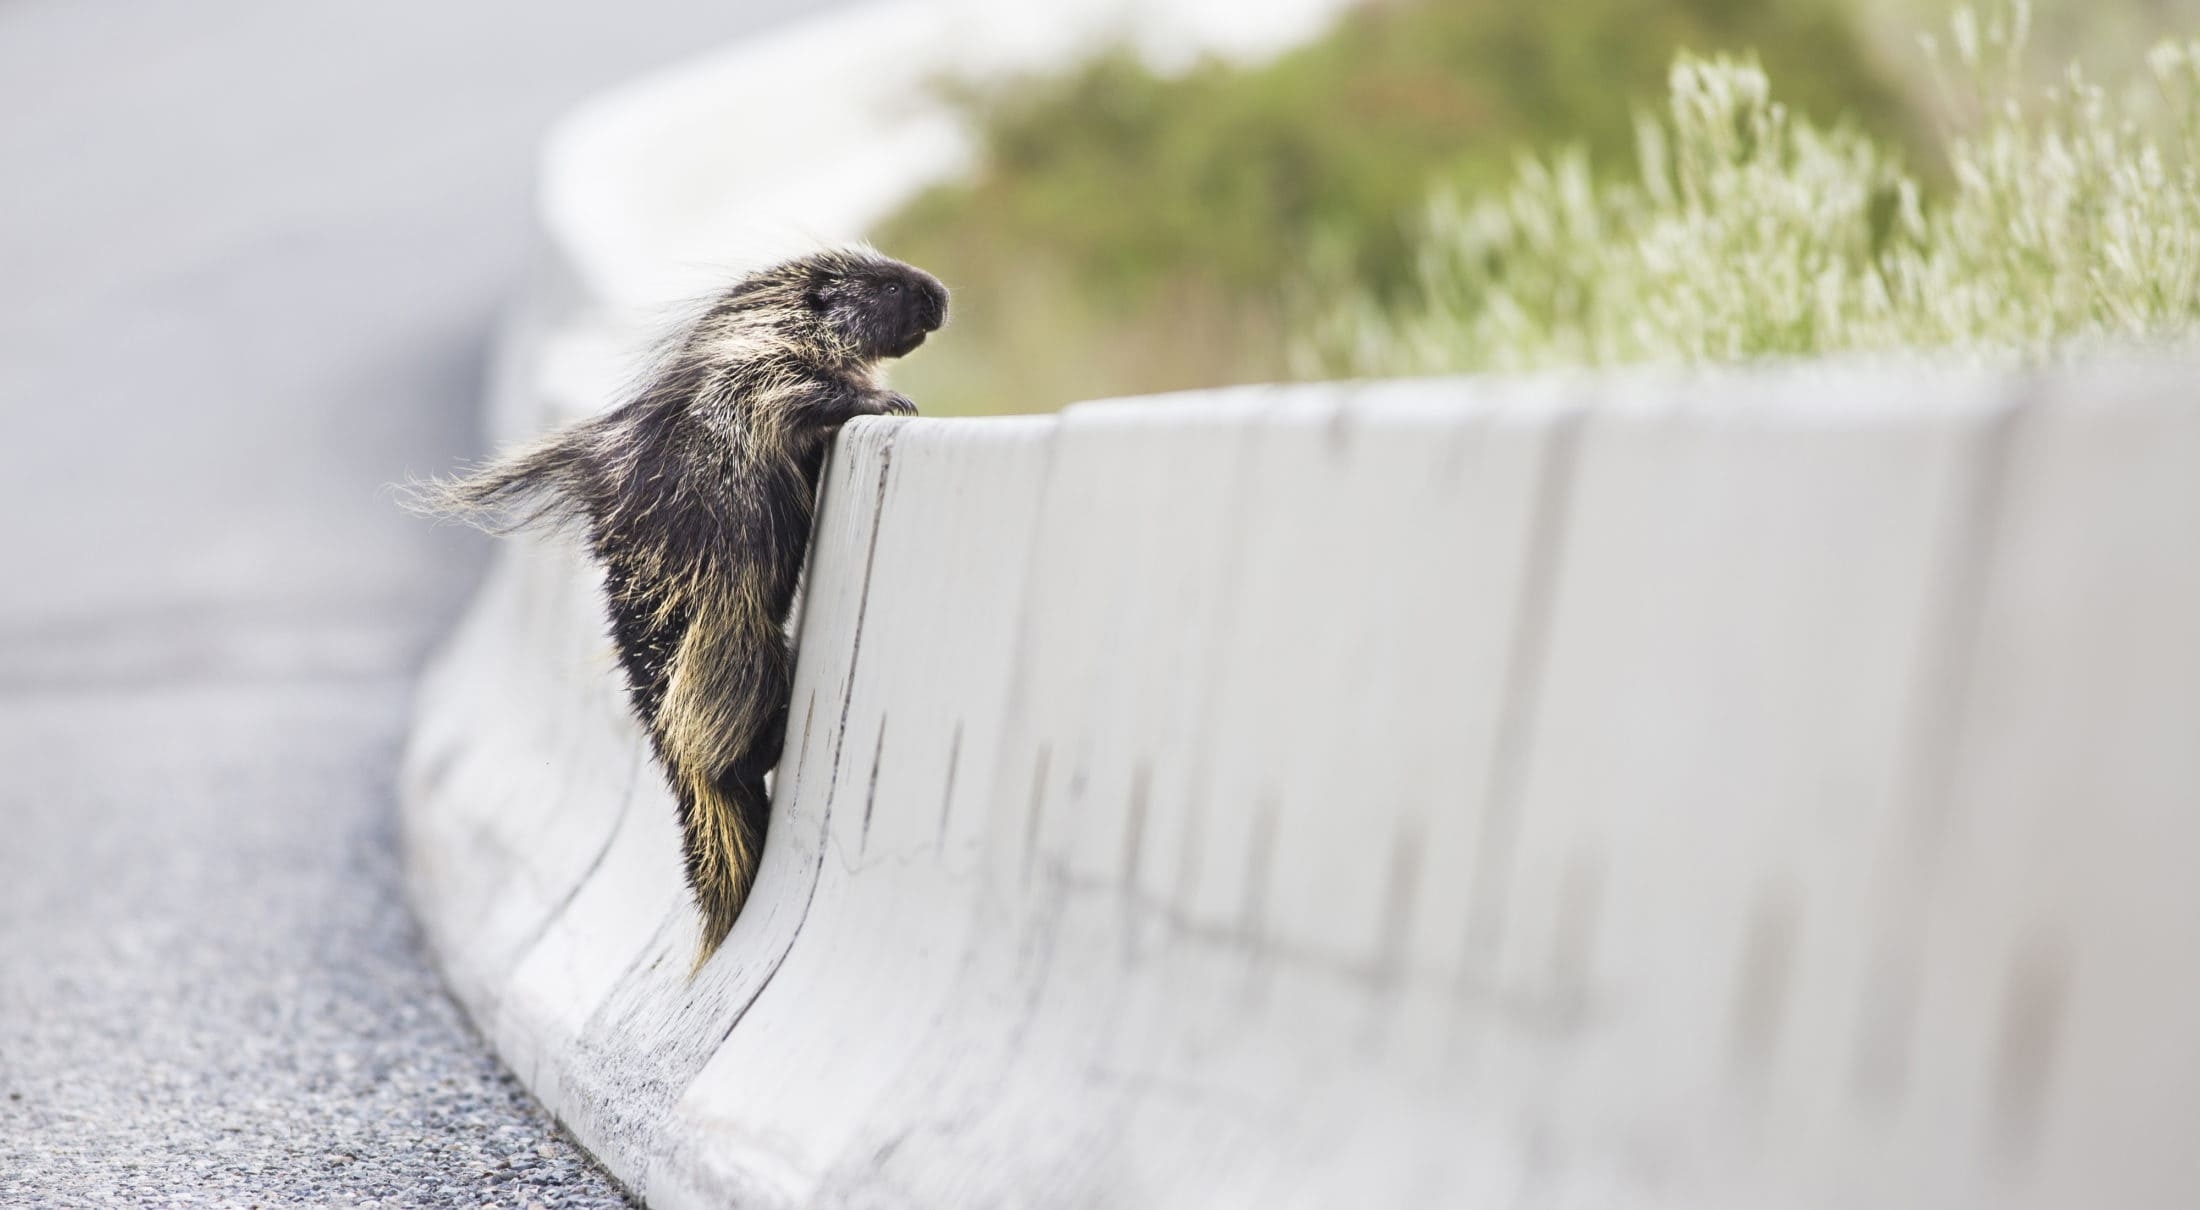 Porcupine climbs over concrete safety barrier